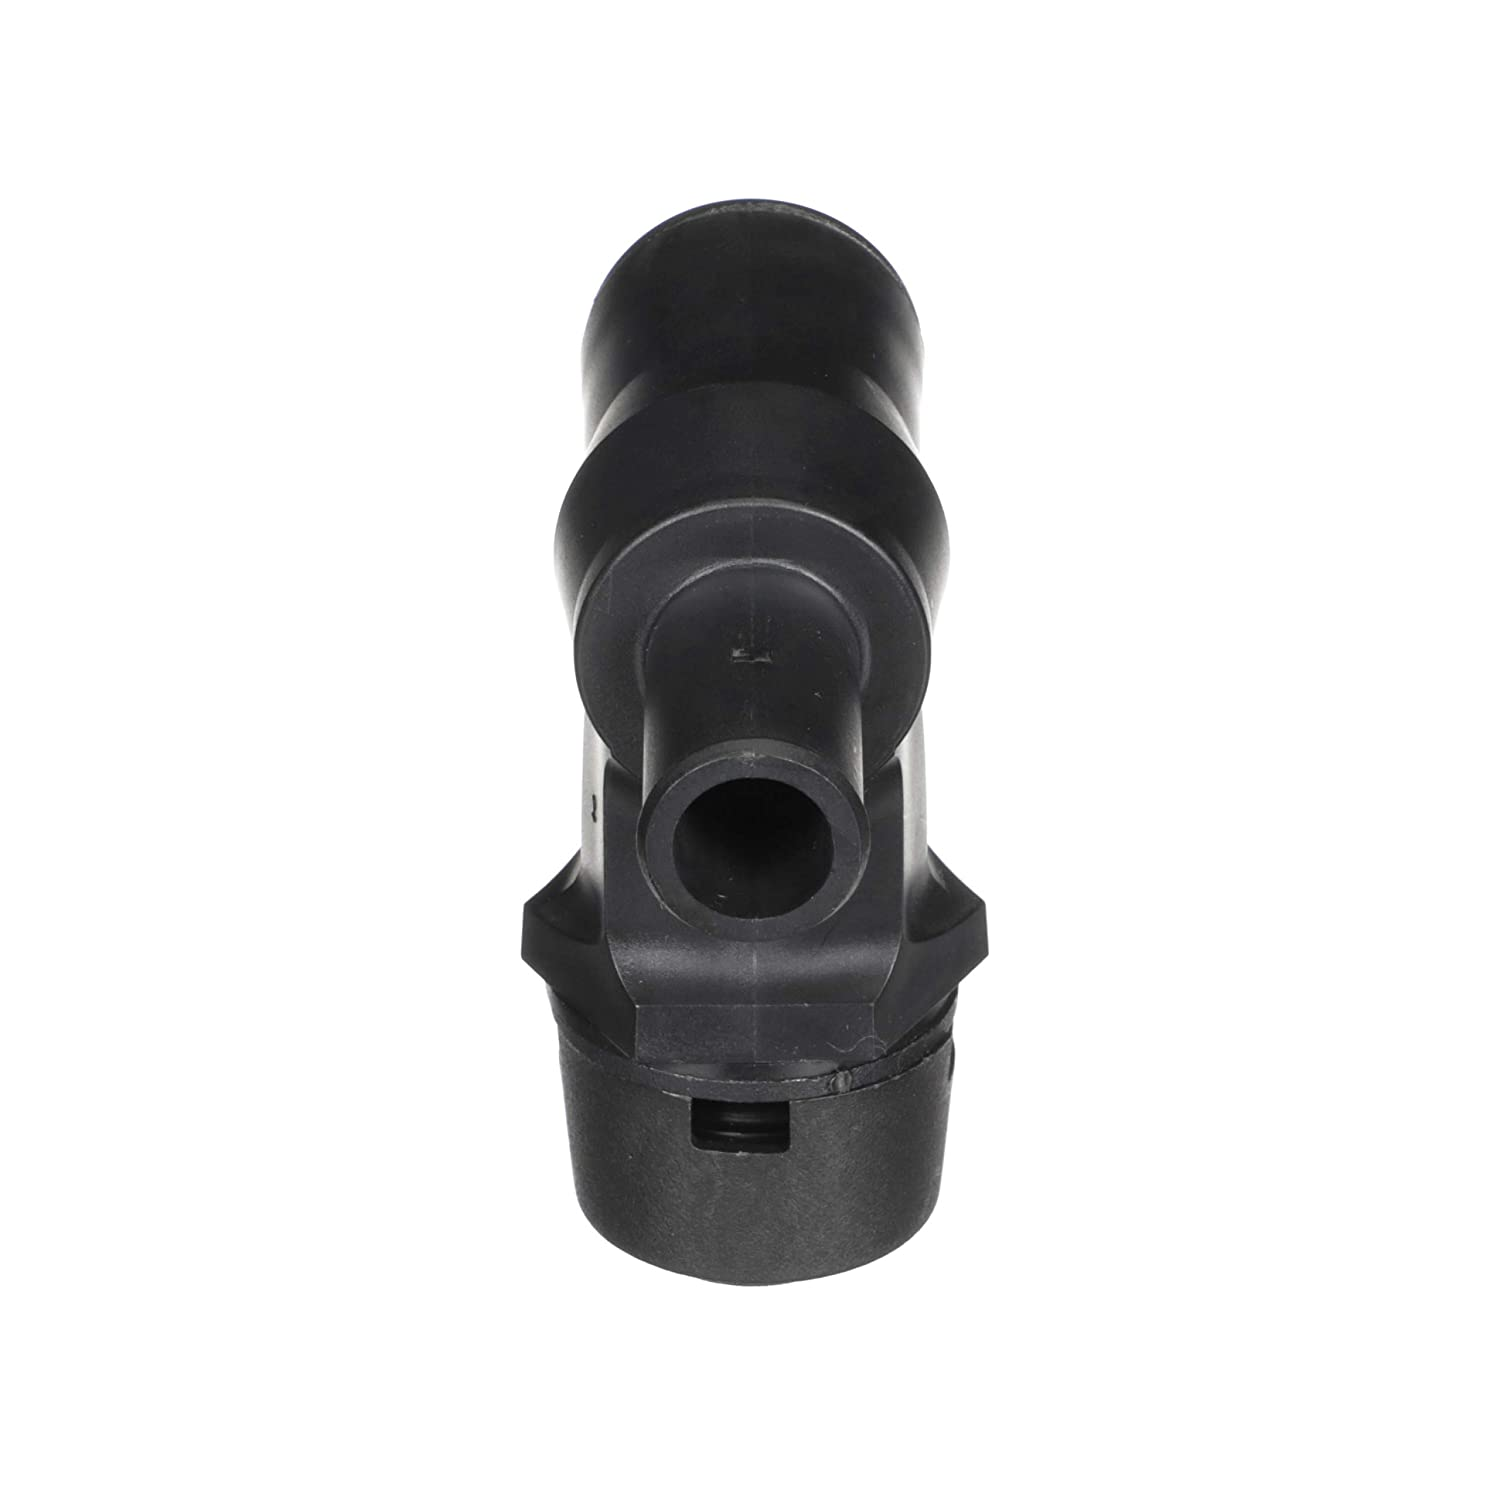 REPL COVER/&RETAINER F//1670 BLK Attwood 911526-1